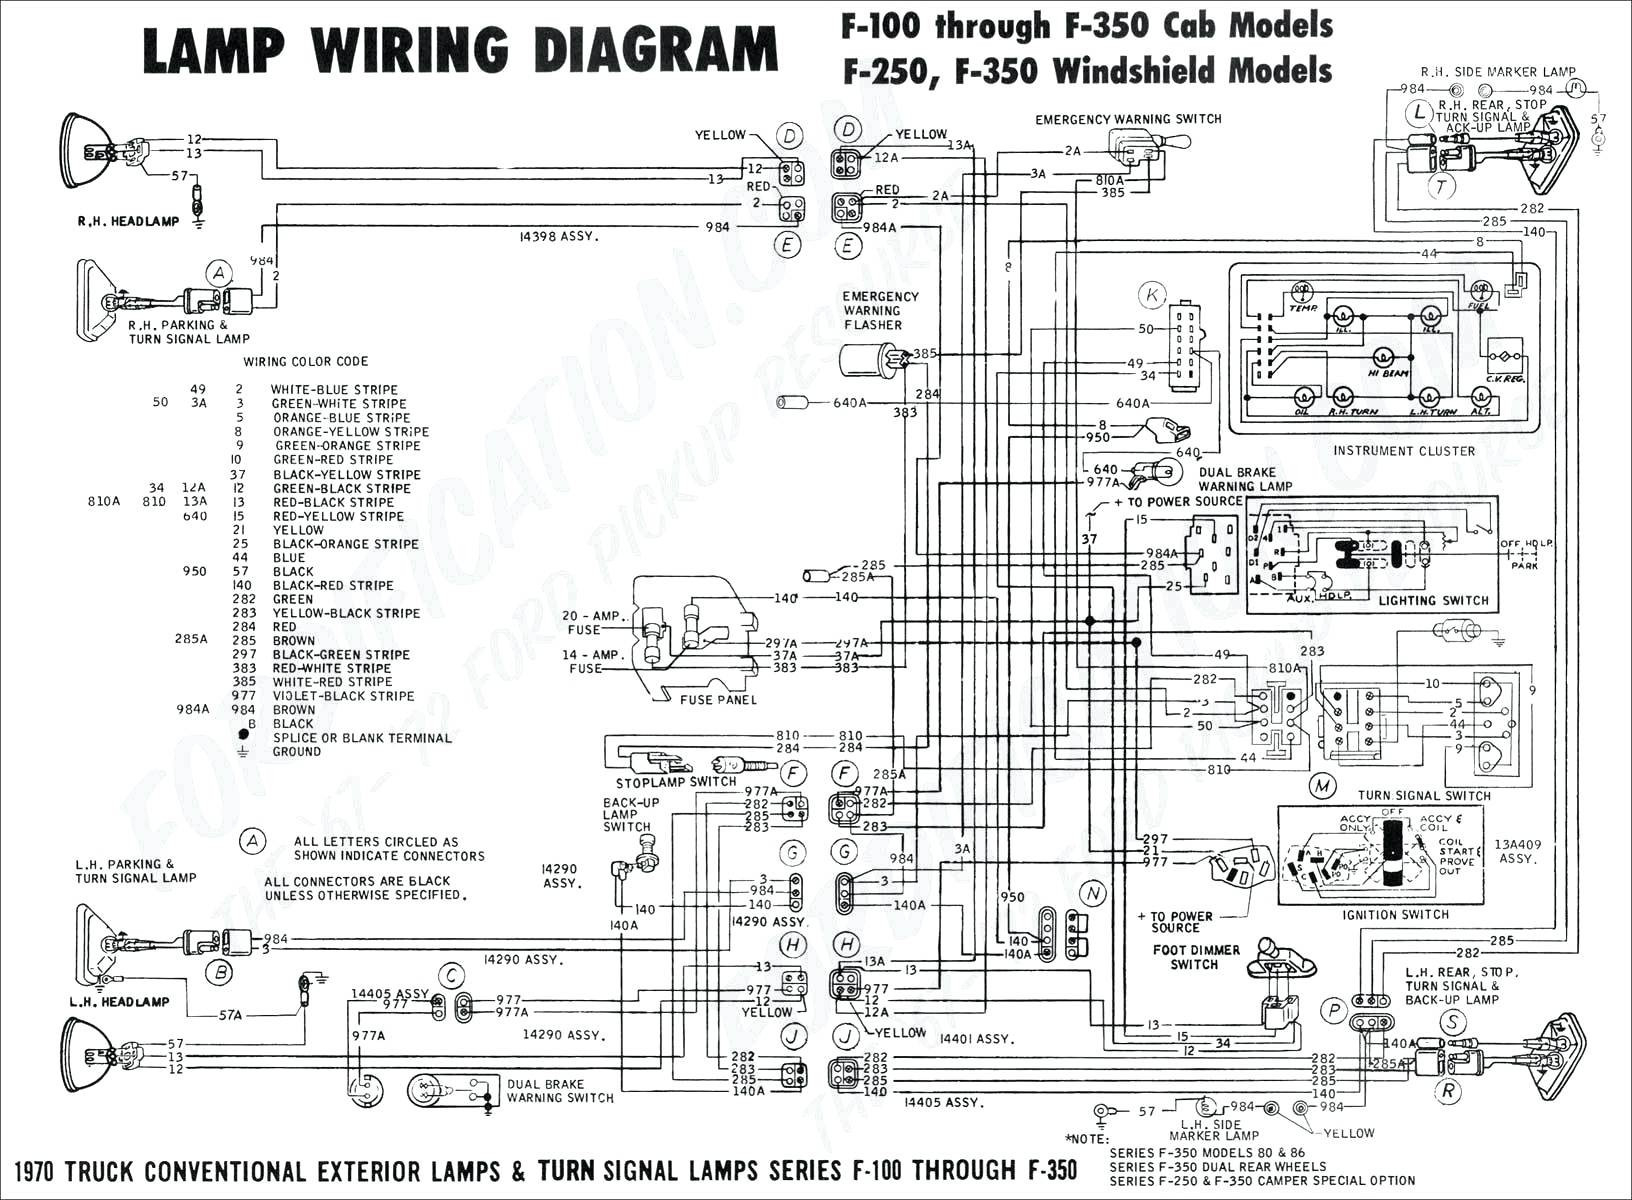 Chevrolet Ssr Ignition Harness Diagram - Wiring Diagram K9 on